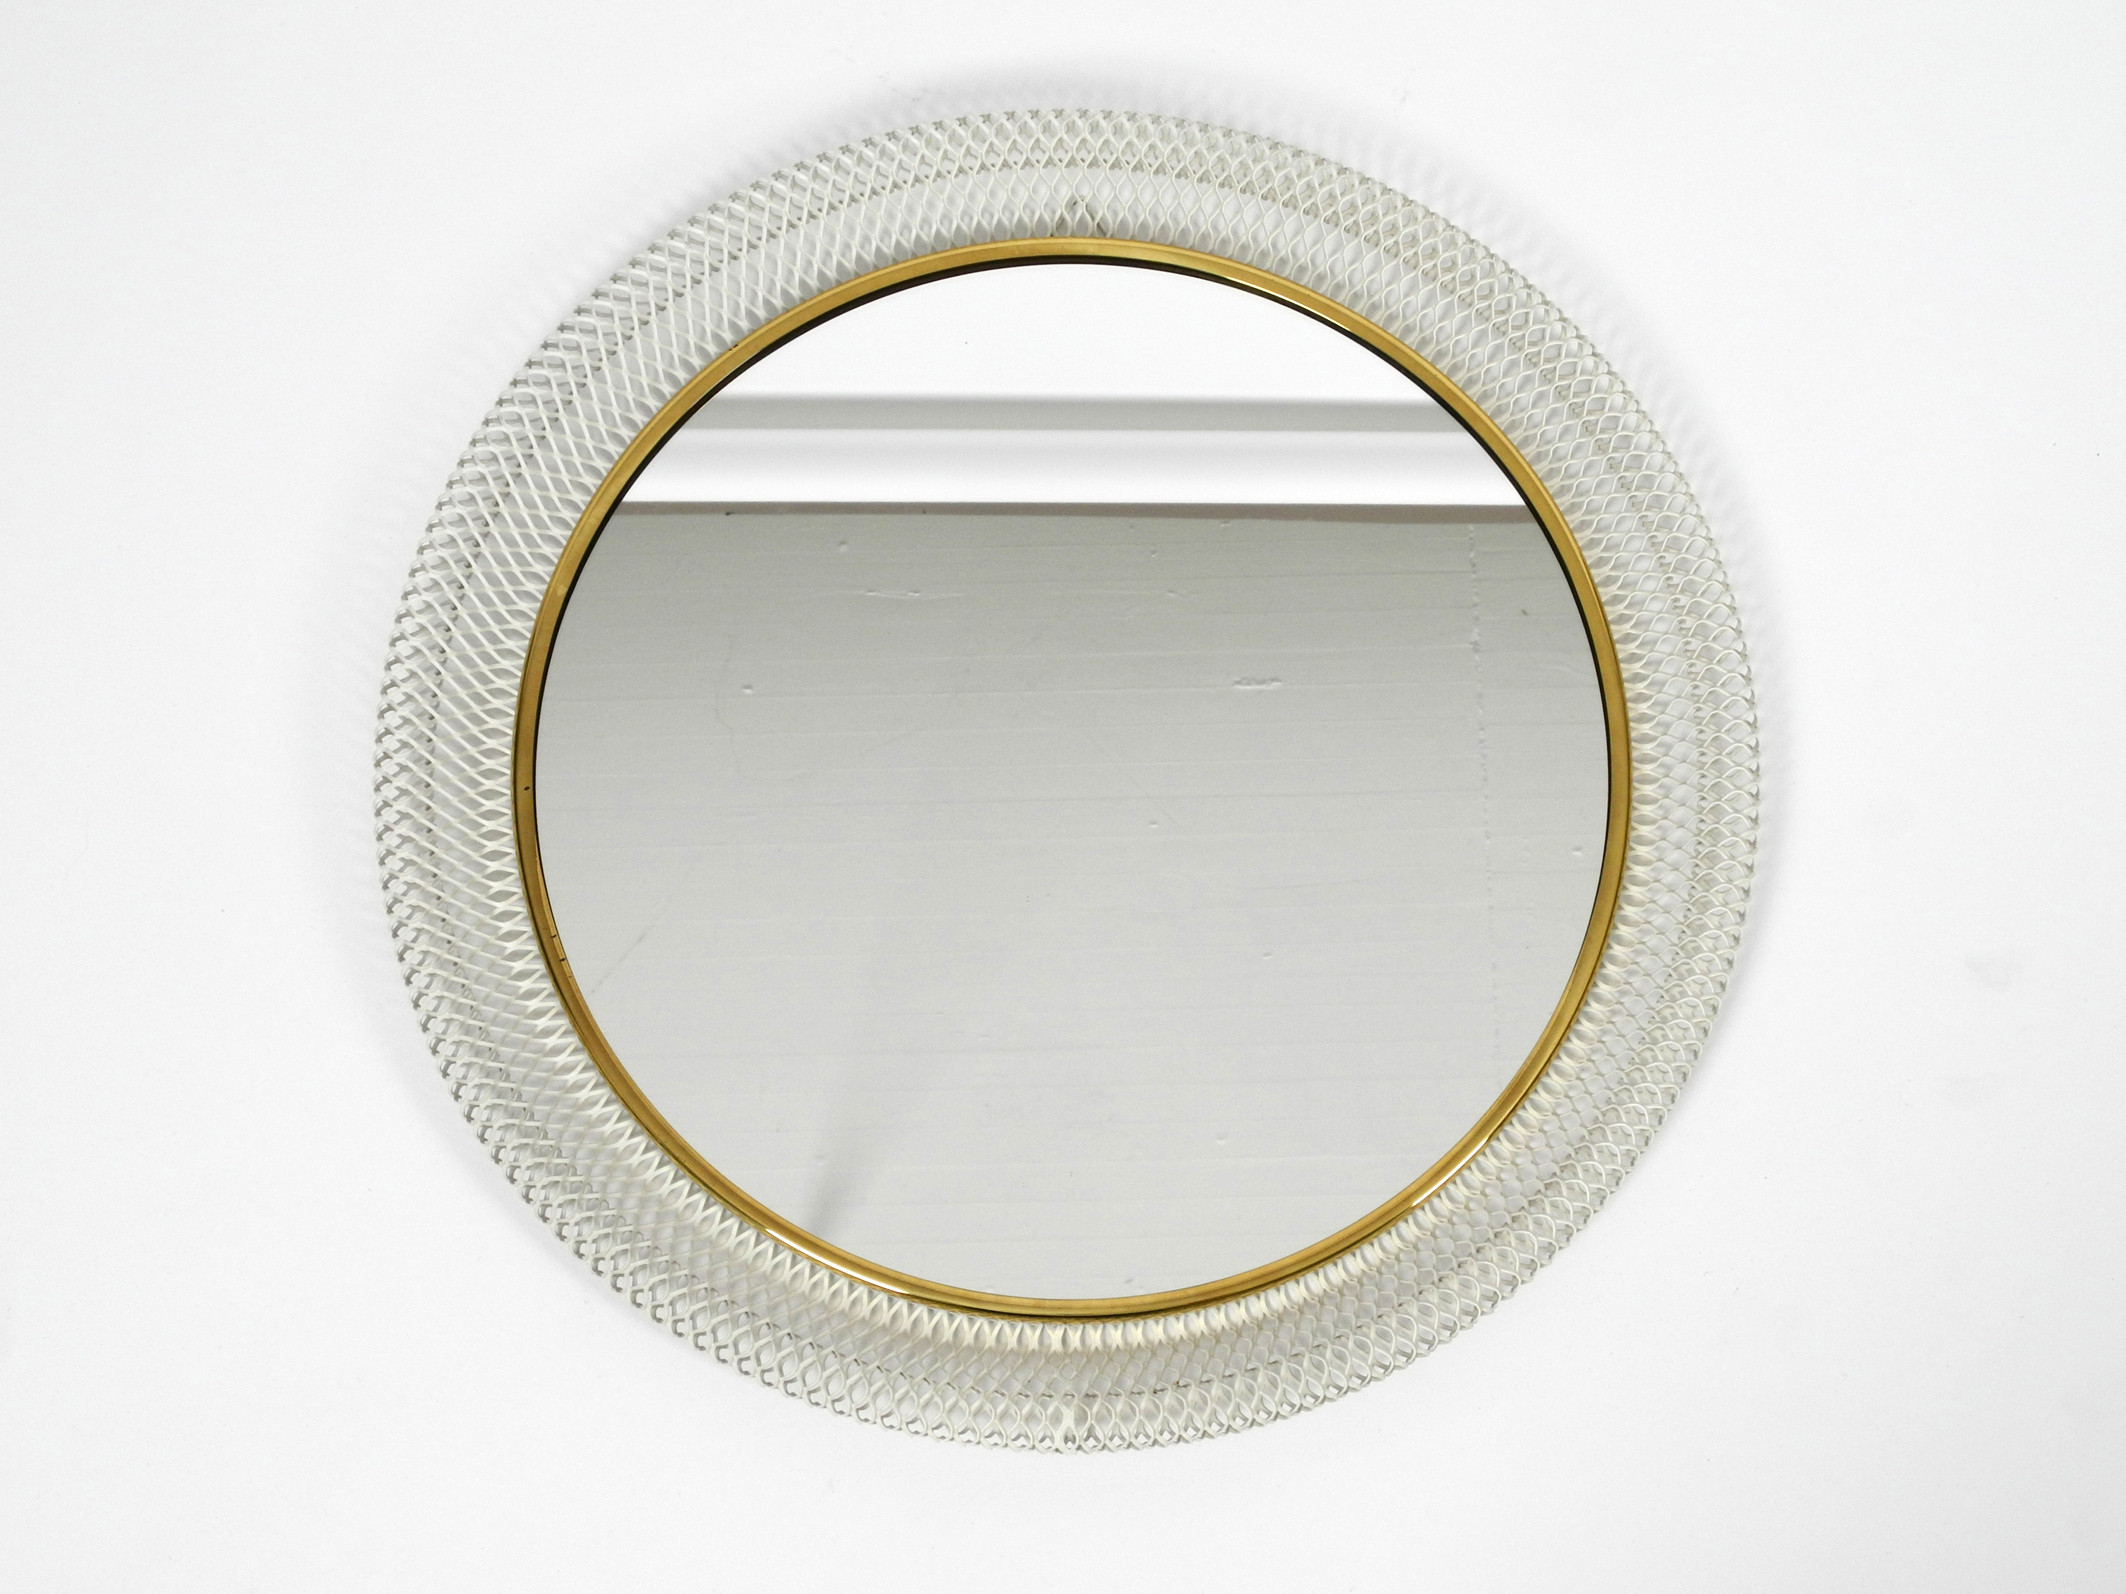 Best And Newest Very Nice Round Xl Mid Century Modern Wall Mirror With White Metal Frame In Mid Century Modern Wall Mirrors (View 2 of 20)